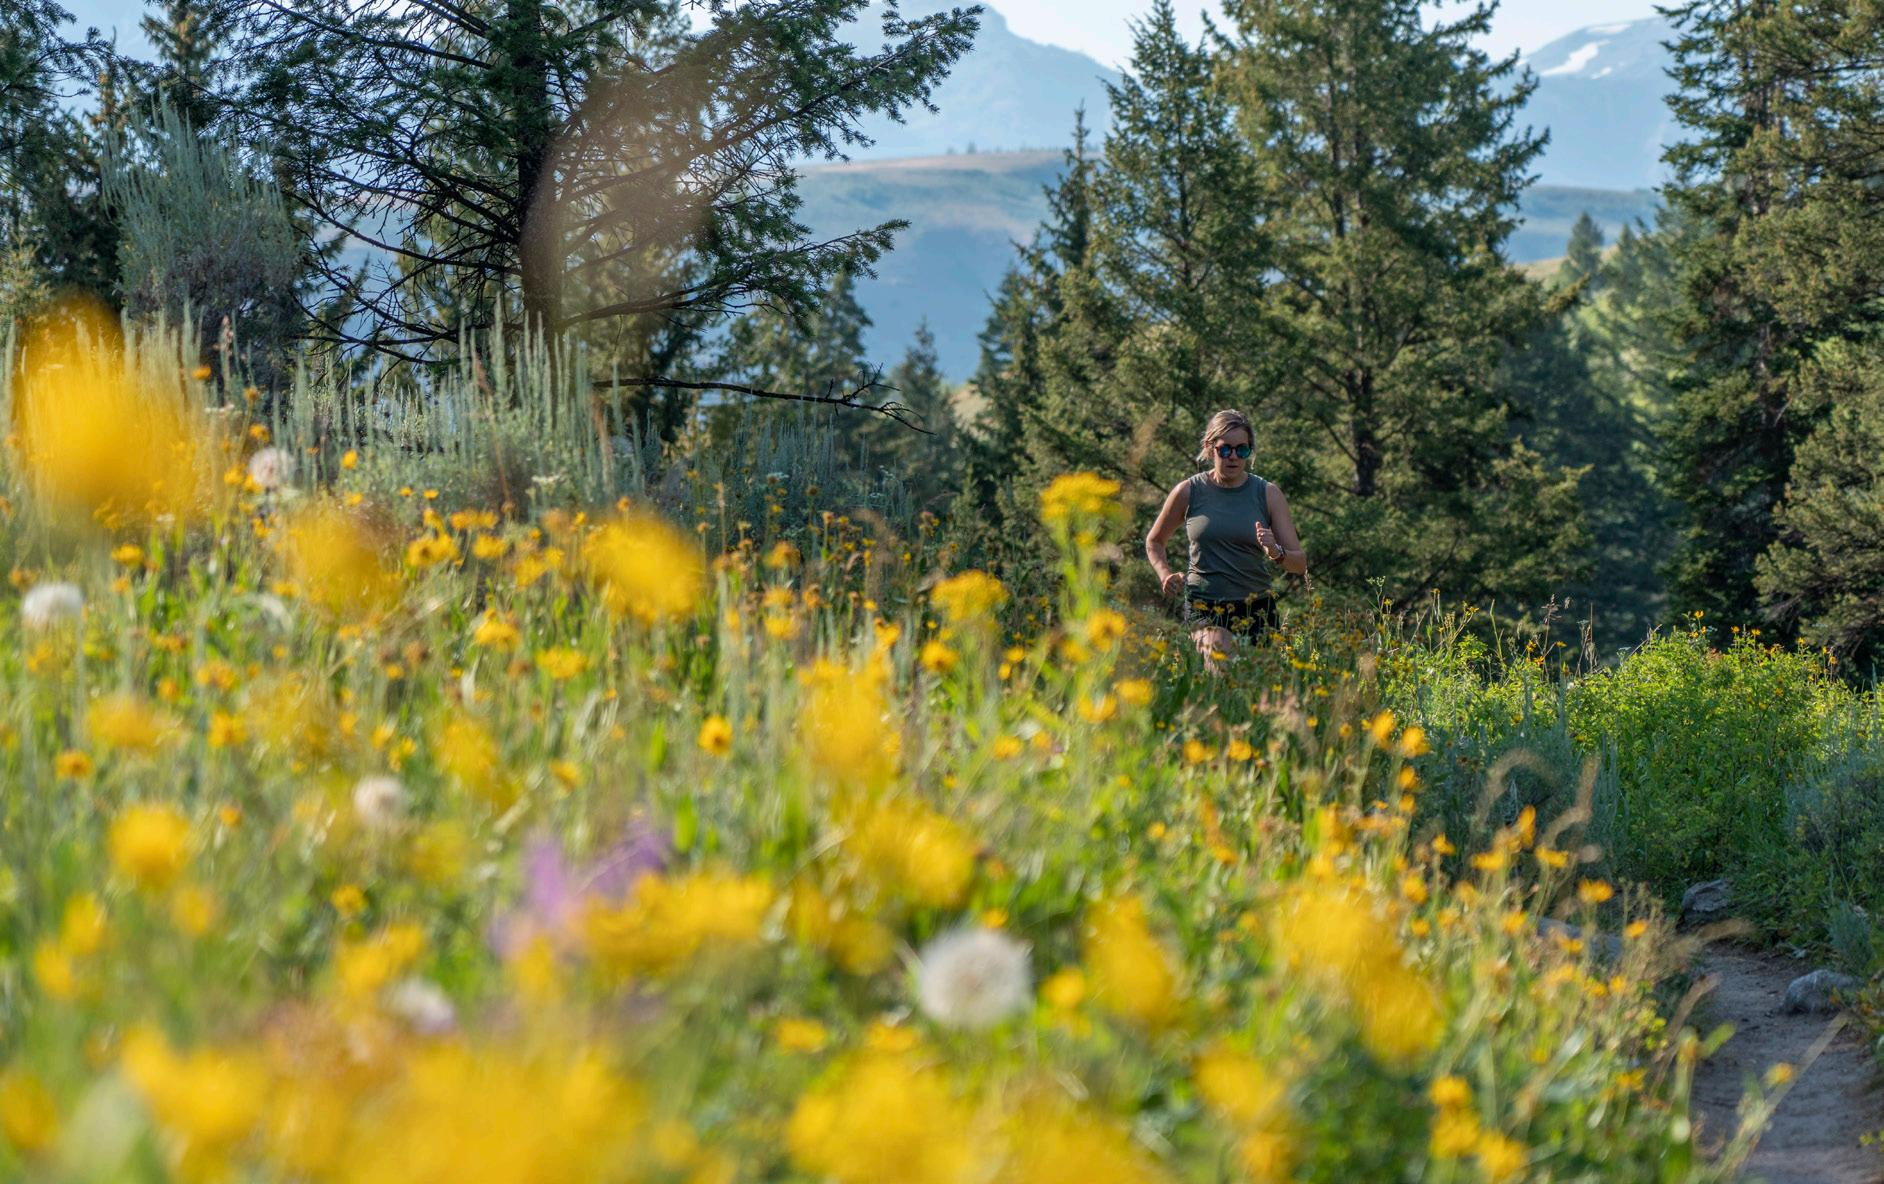 Page 50 of On Two Feet: Running Your Way Through Teton Trails by Shannon Sollitt